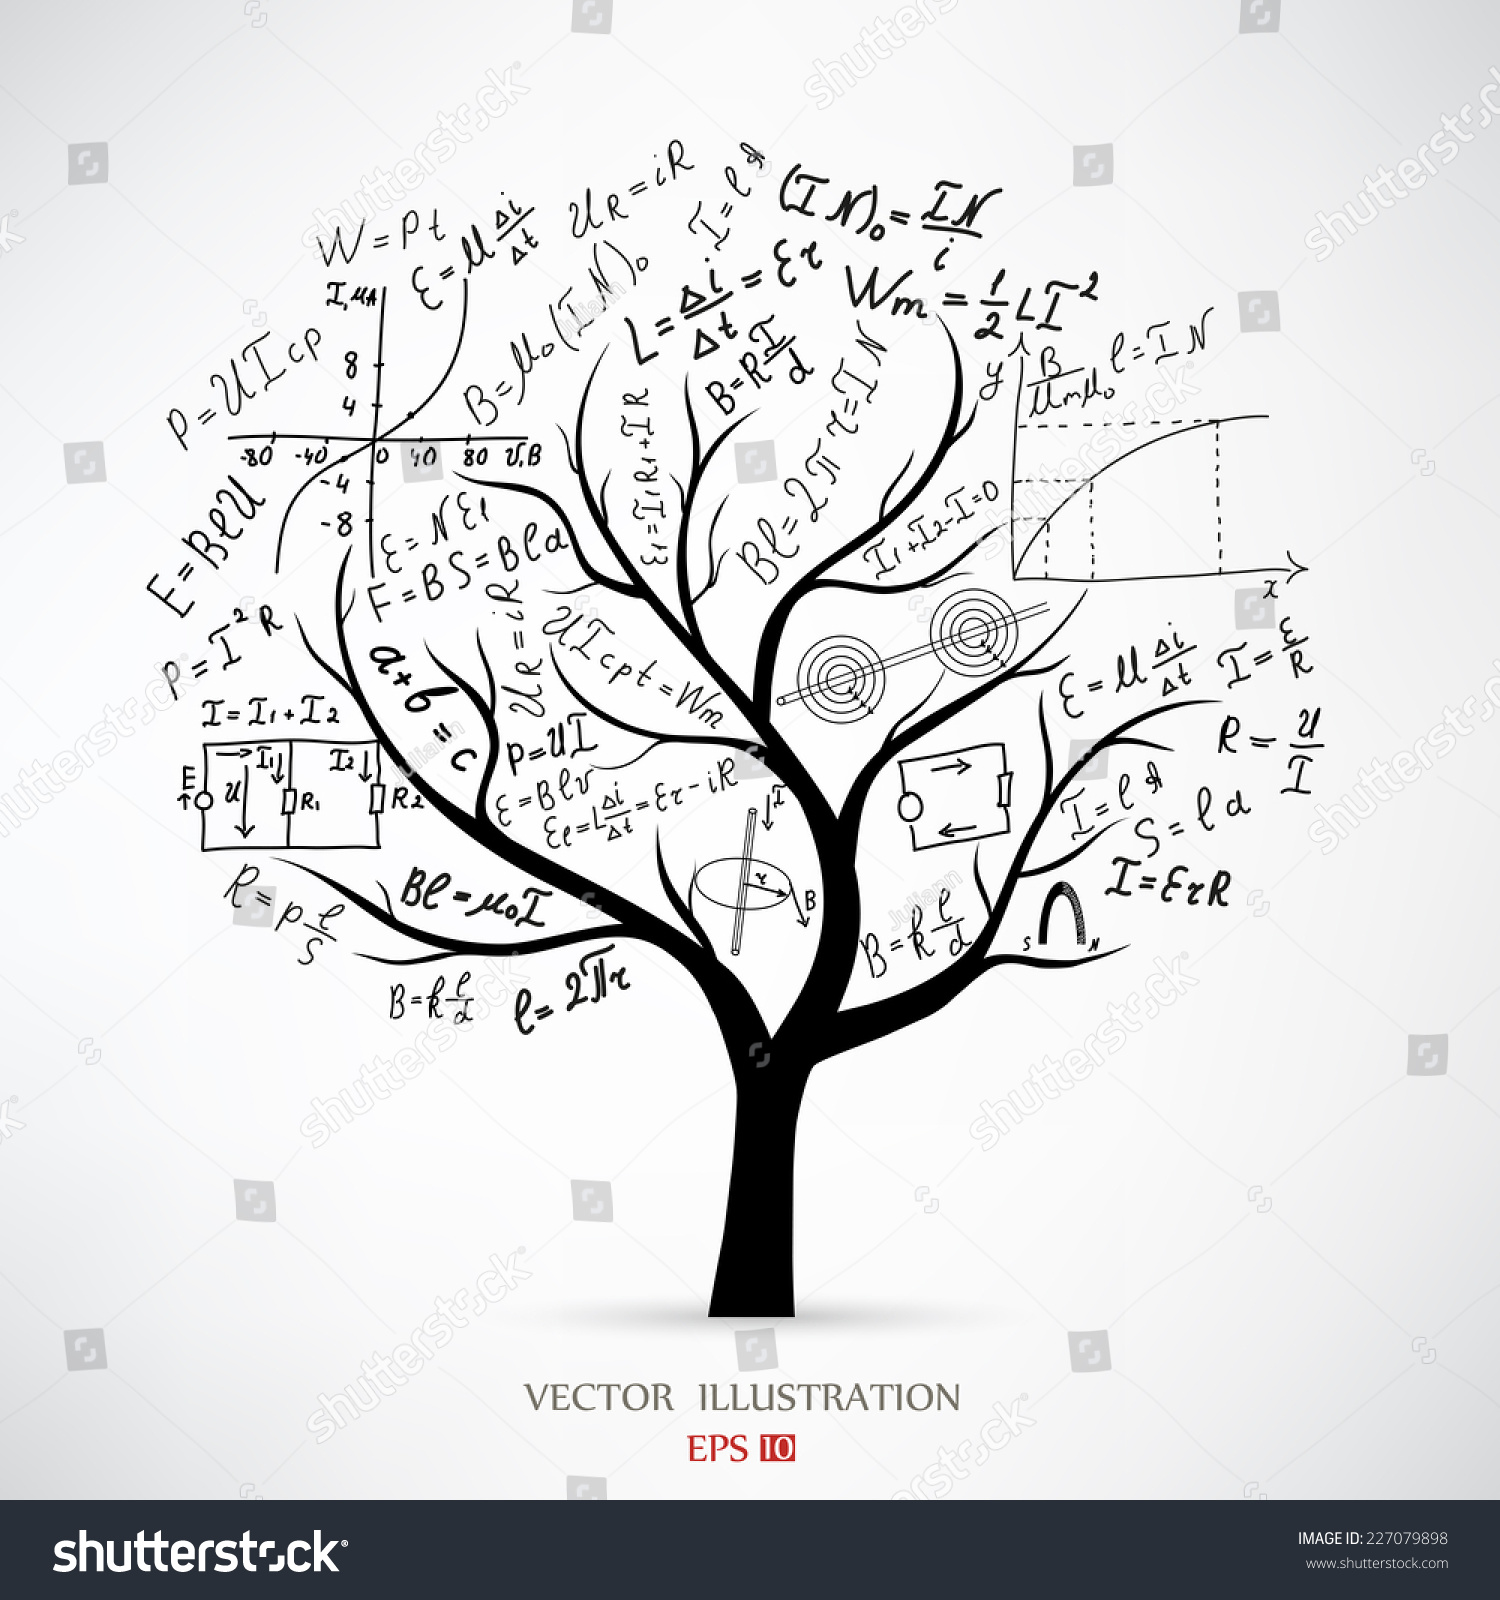 Mathematical equations formulas on tree concept stock for How to calculate board feet in a tree